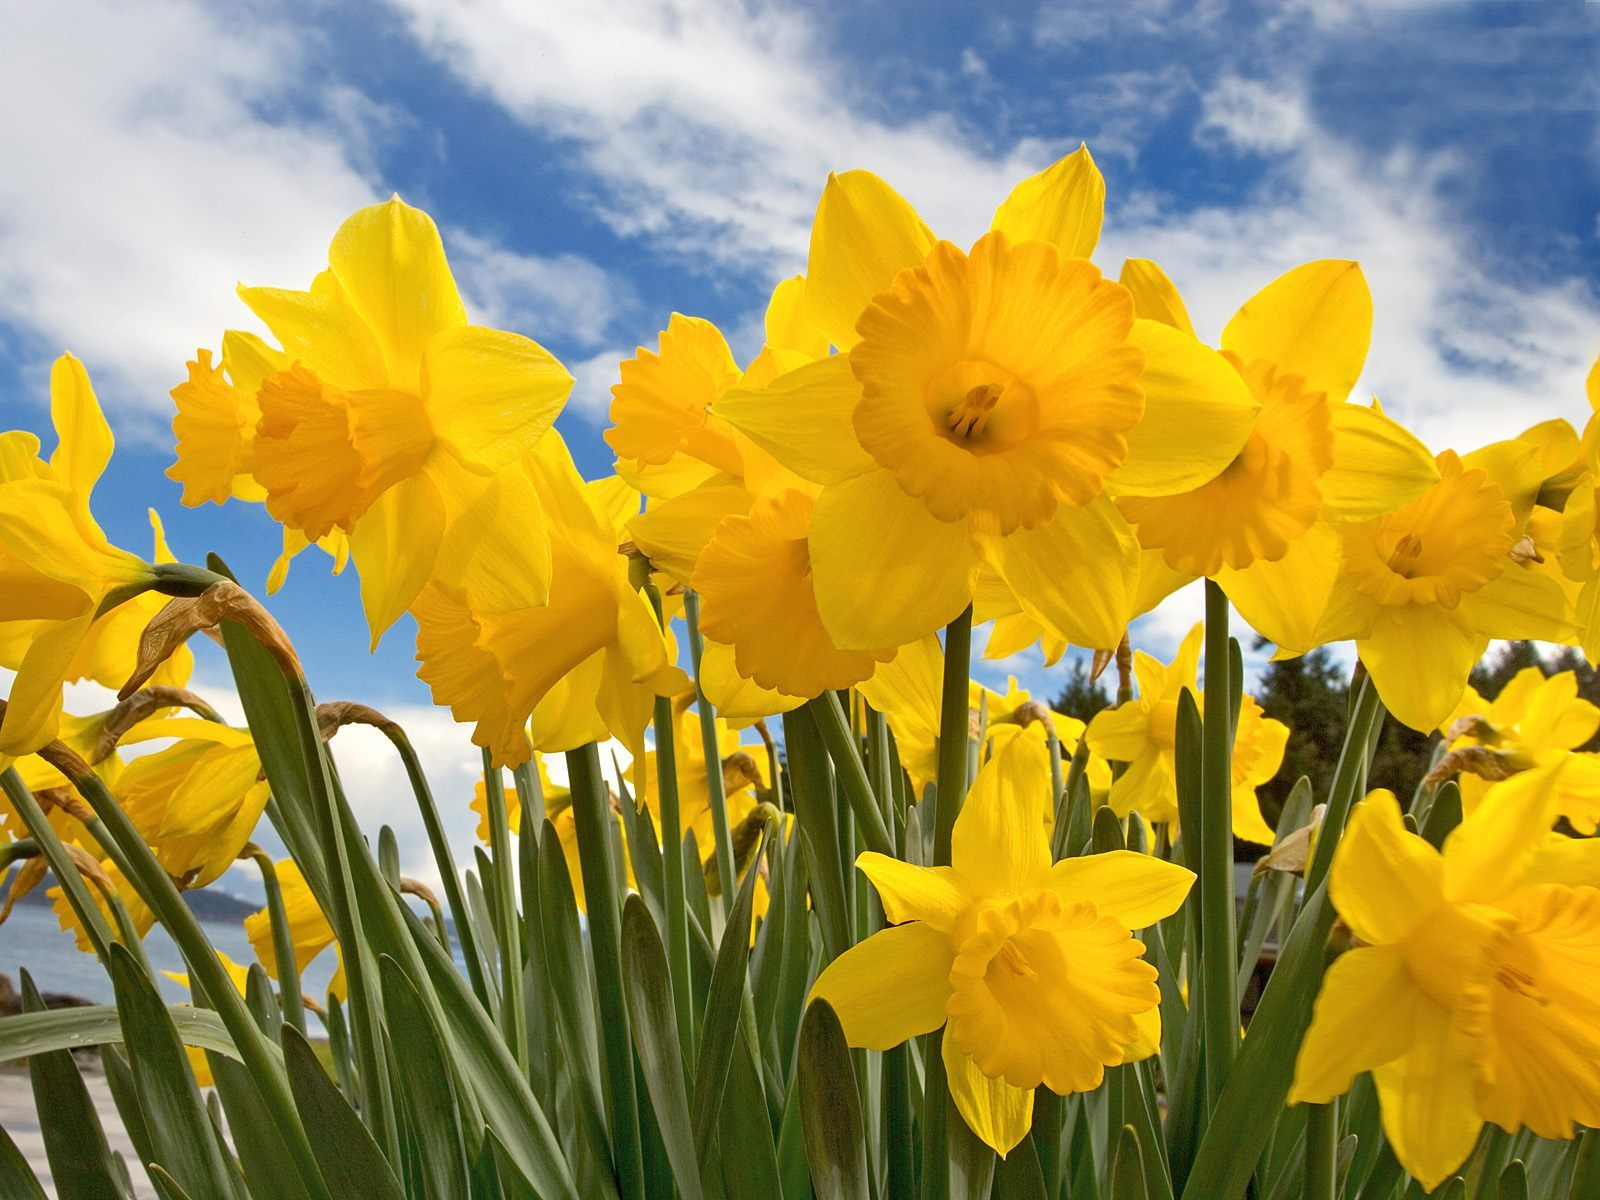 Google images daffodils picture transparent stock Google images daffodils - ClipartFest picture transparent stock